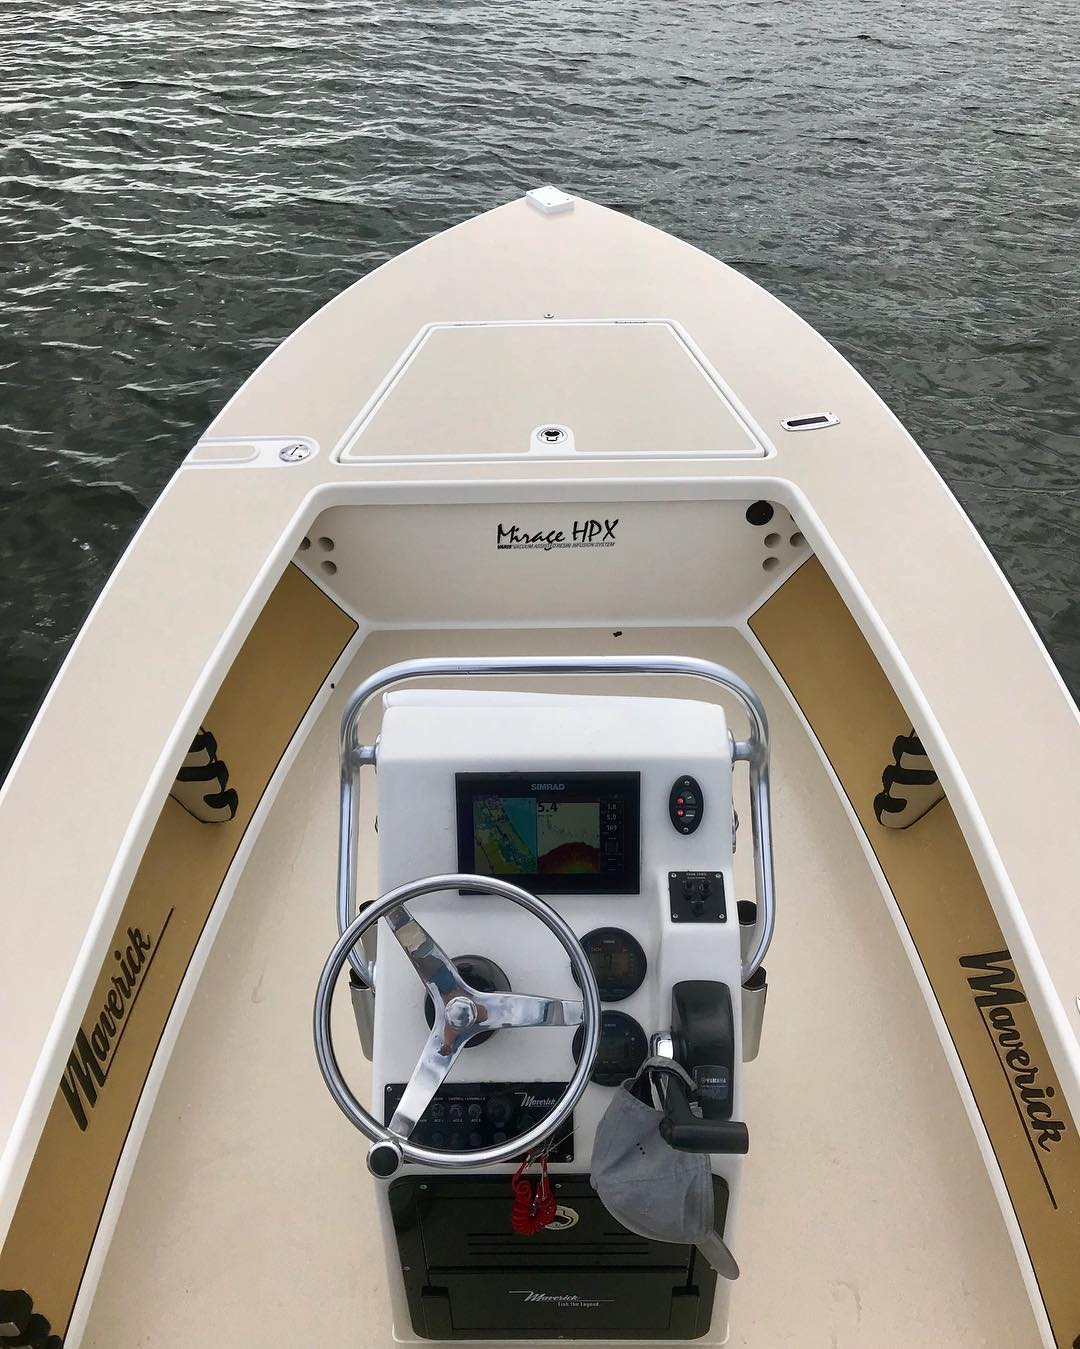 Smooth sea trial on this maverick HPX. A smooth 47 mph with a 115 Yamaha.